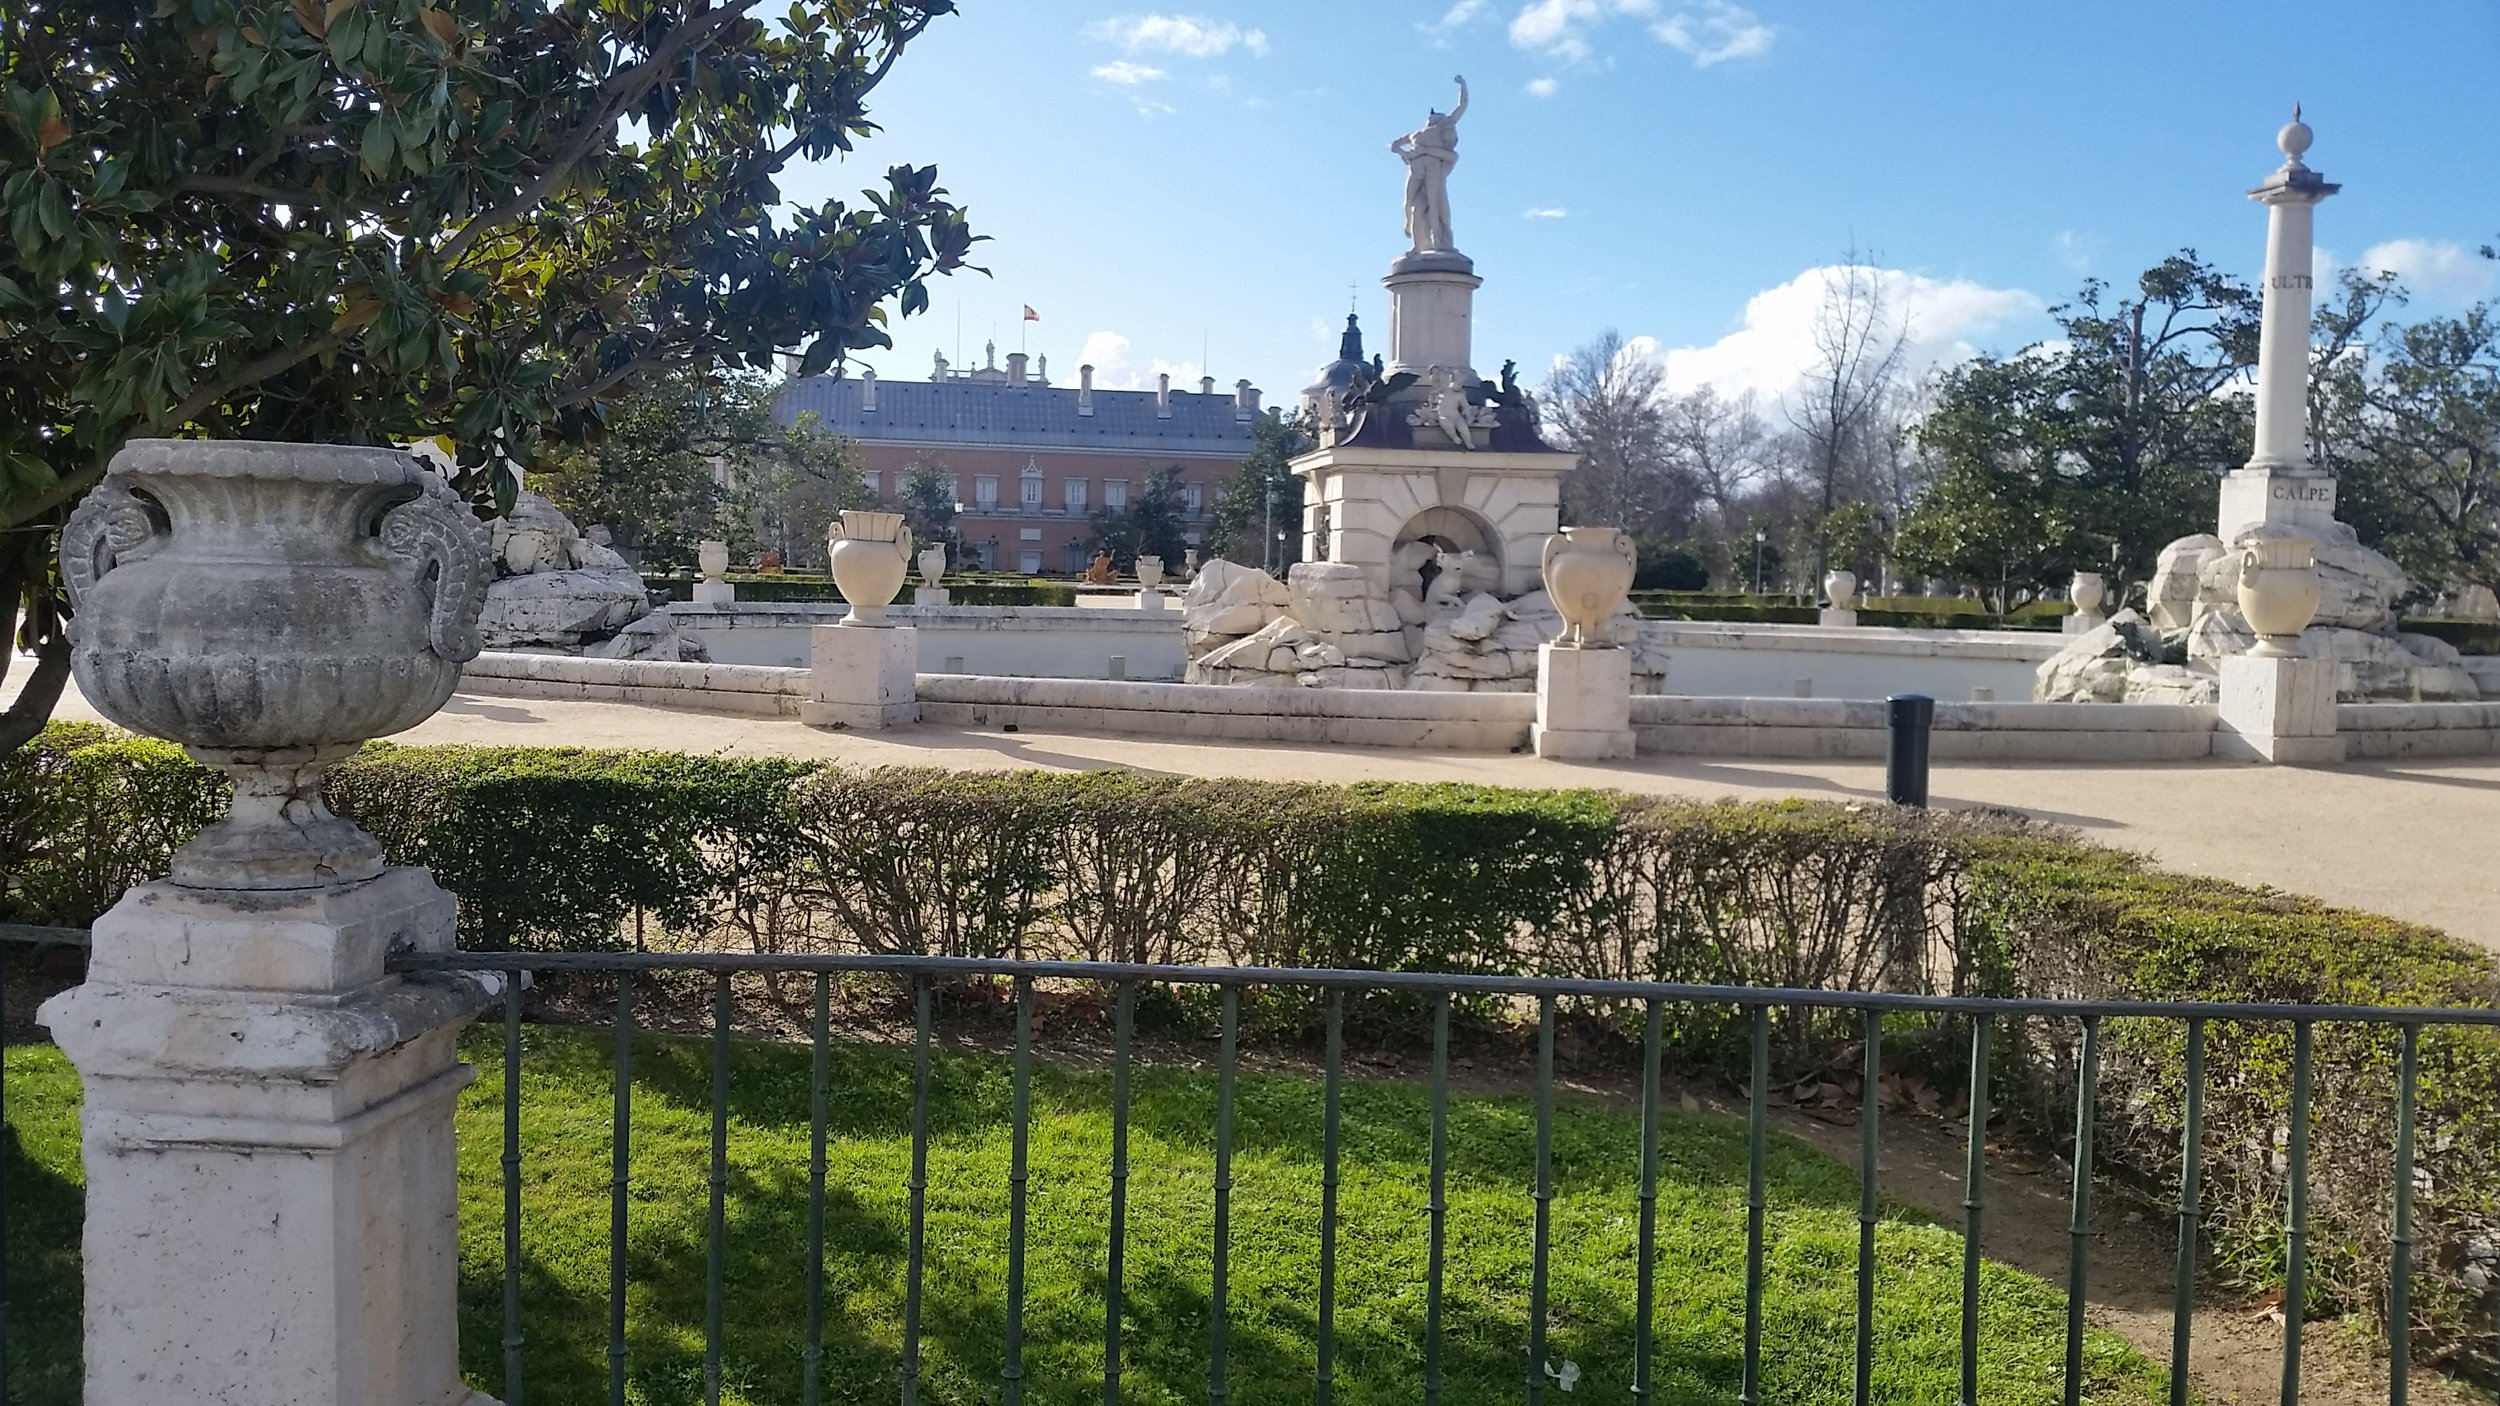 A view of the palace at Aranjuez from one of the gardens